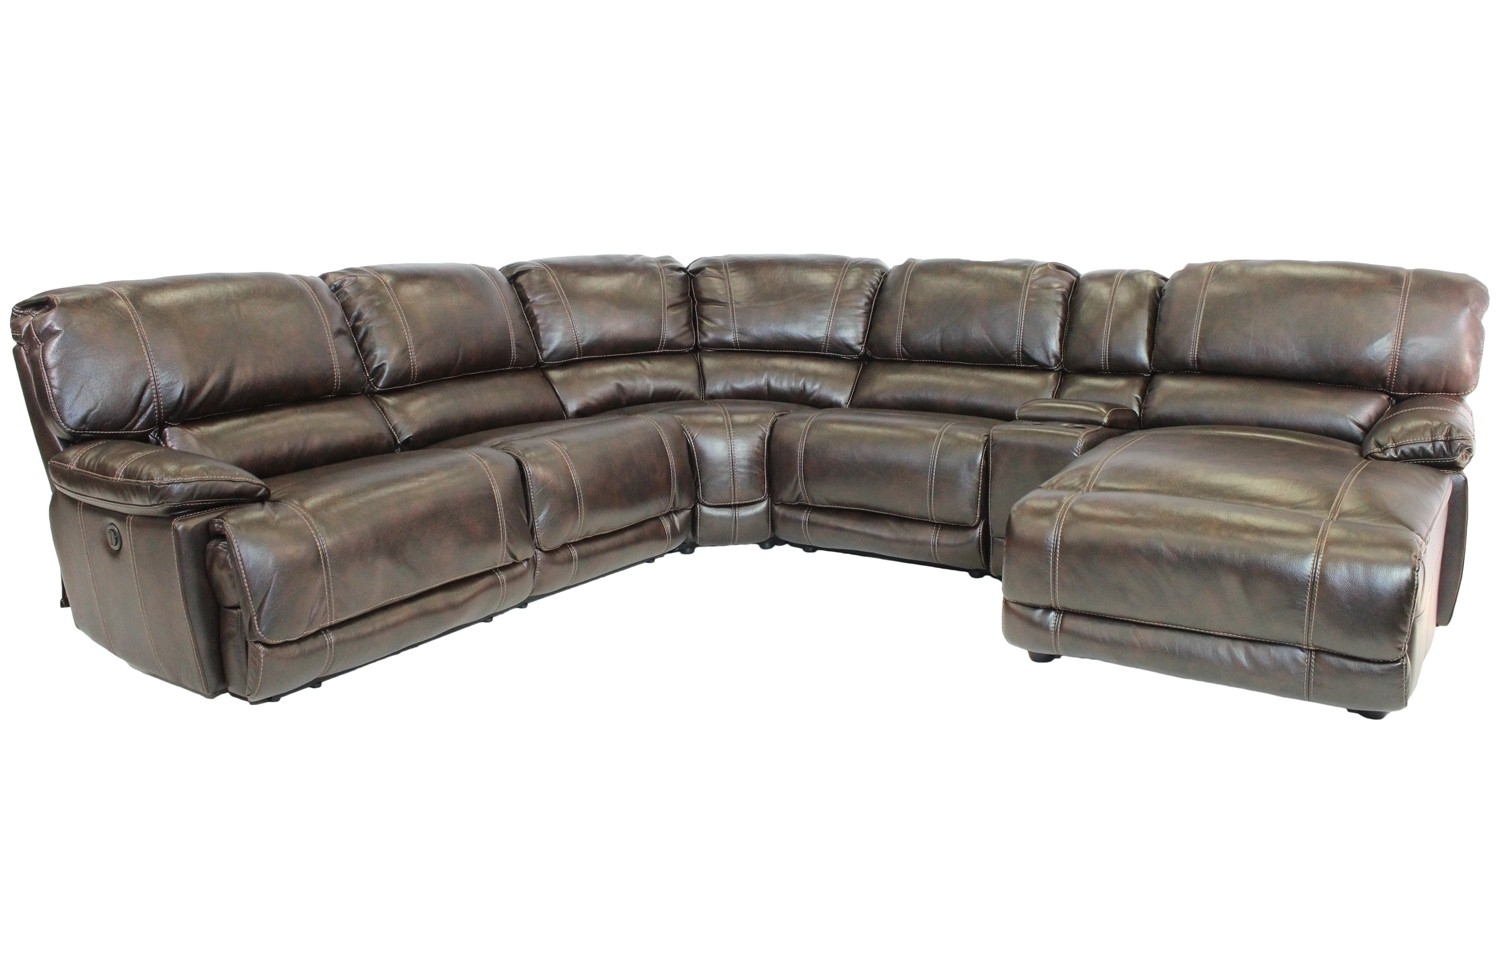 Sectional Sofas | Save Mor Online And In-Store with Marcus Grey 6 Piece Sectionals With  Power Headrest & Usb (Image 24 of 30)